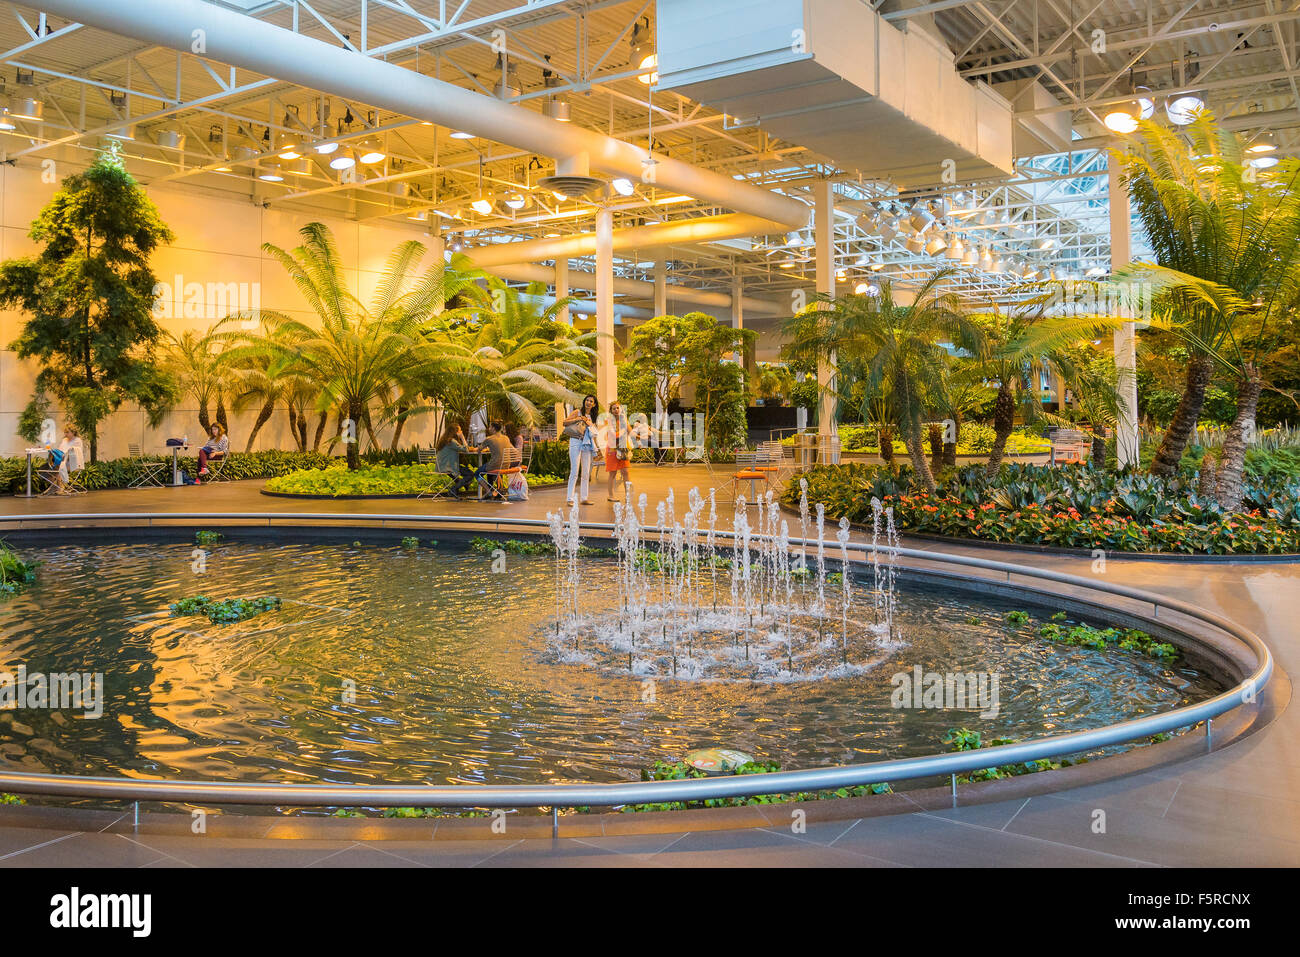 The devonian gardens year round indoor park calgary for Indoor botanical gardens